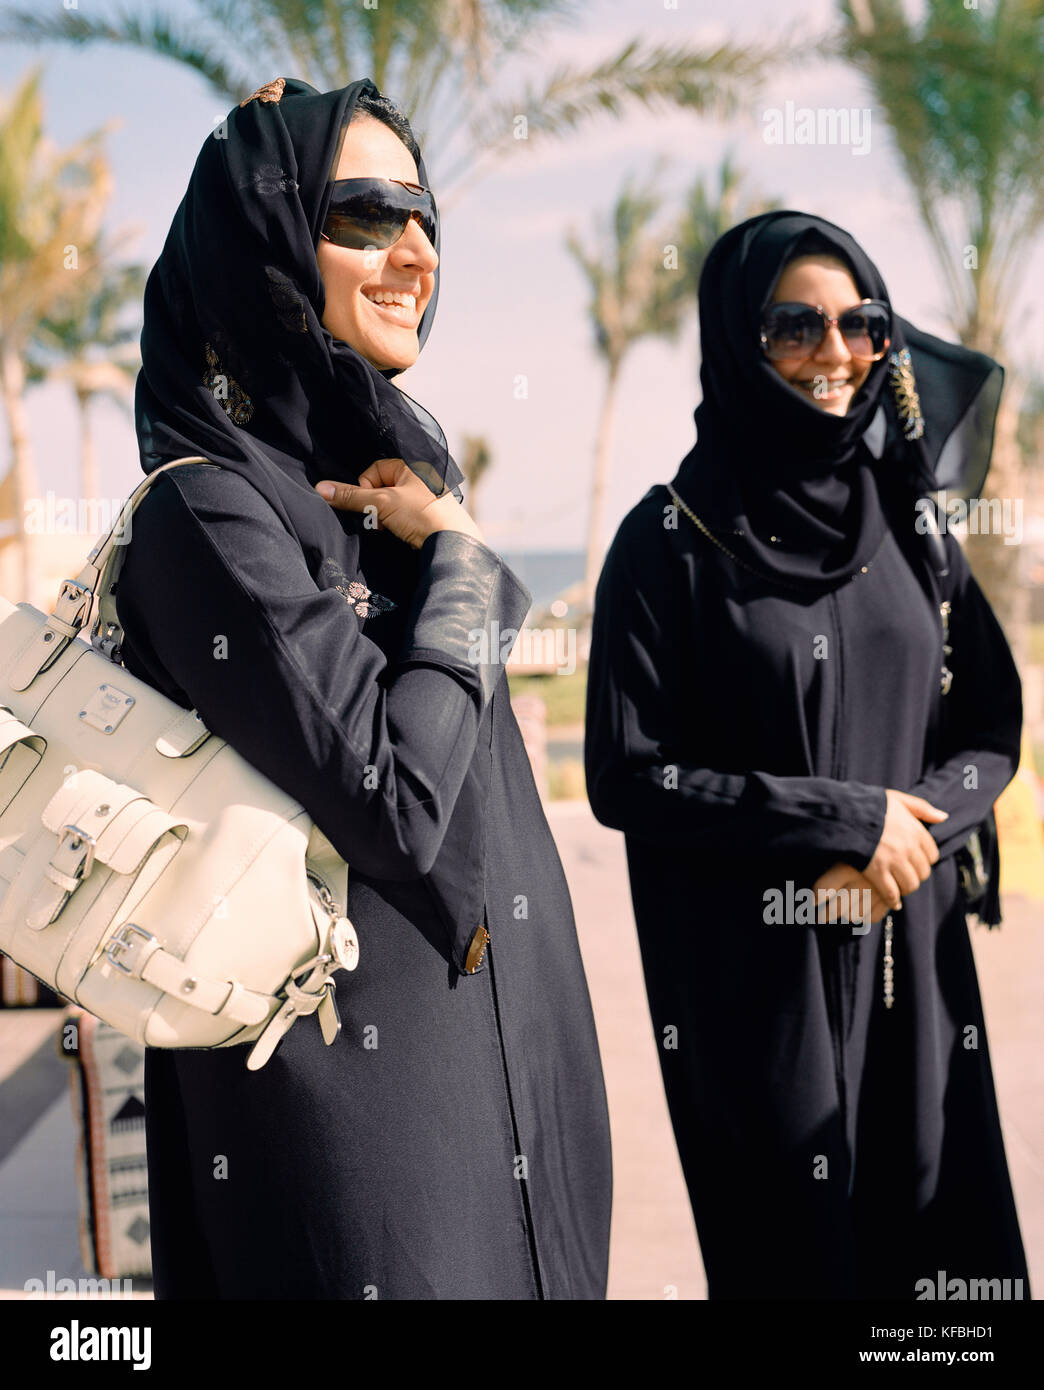 la coste single muslim girls Life after 30 as a single muslim woman  the reality is that there are more single muslim women than males, and you should look for a guy who is loving and kind.